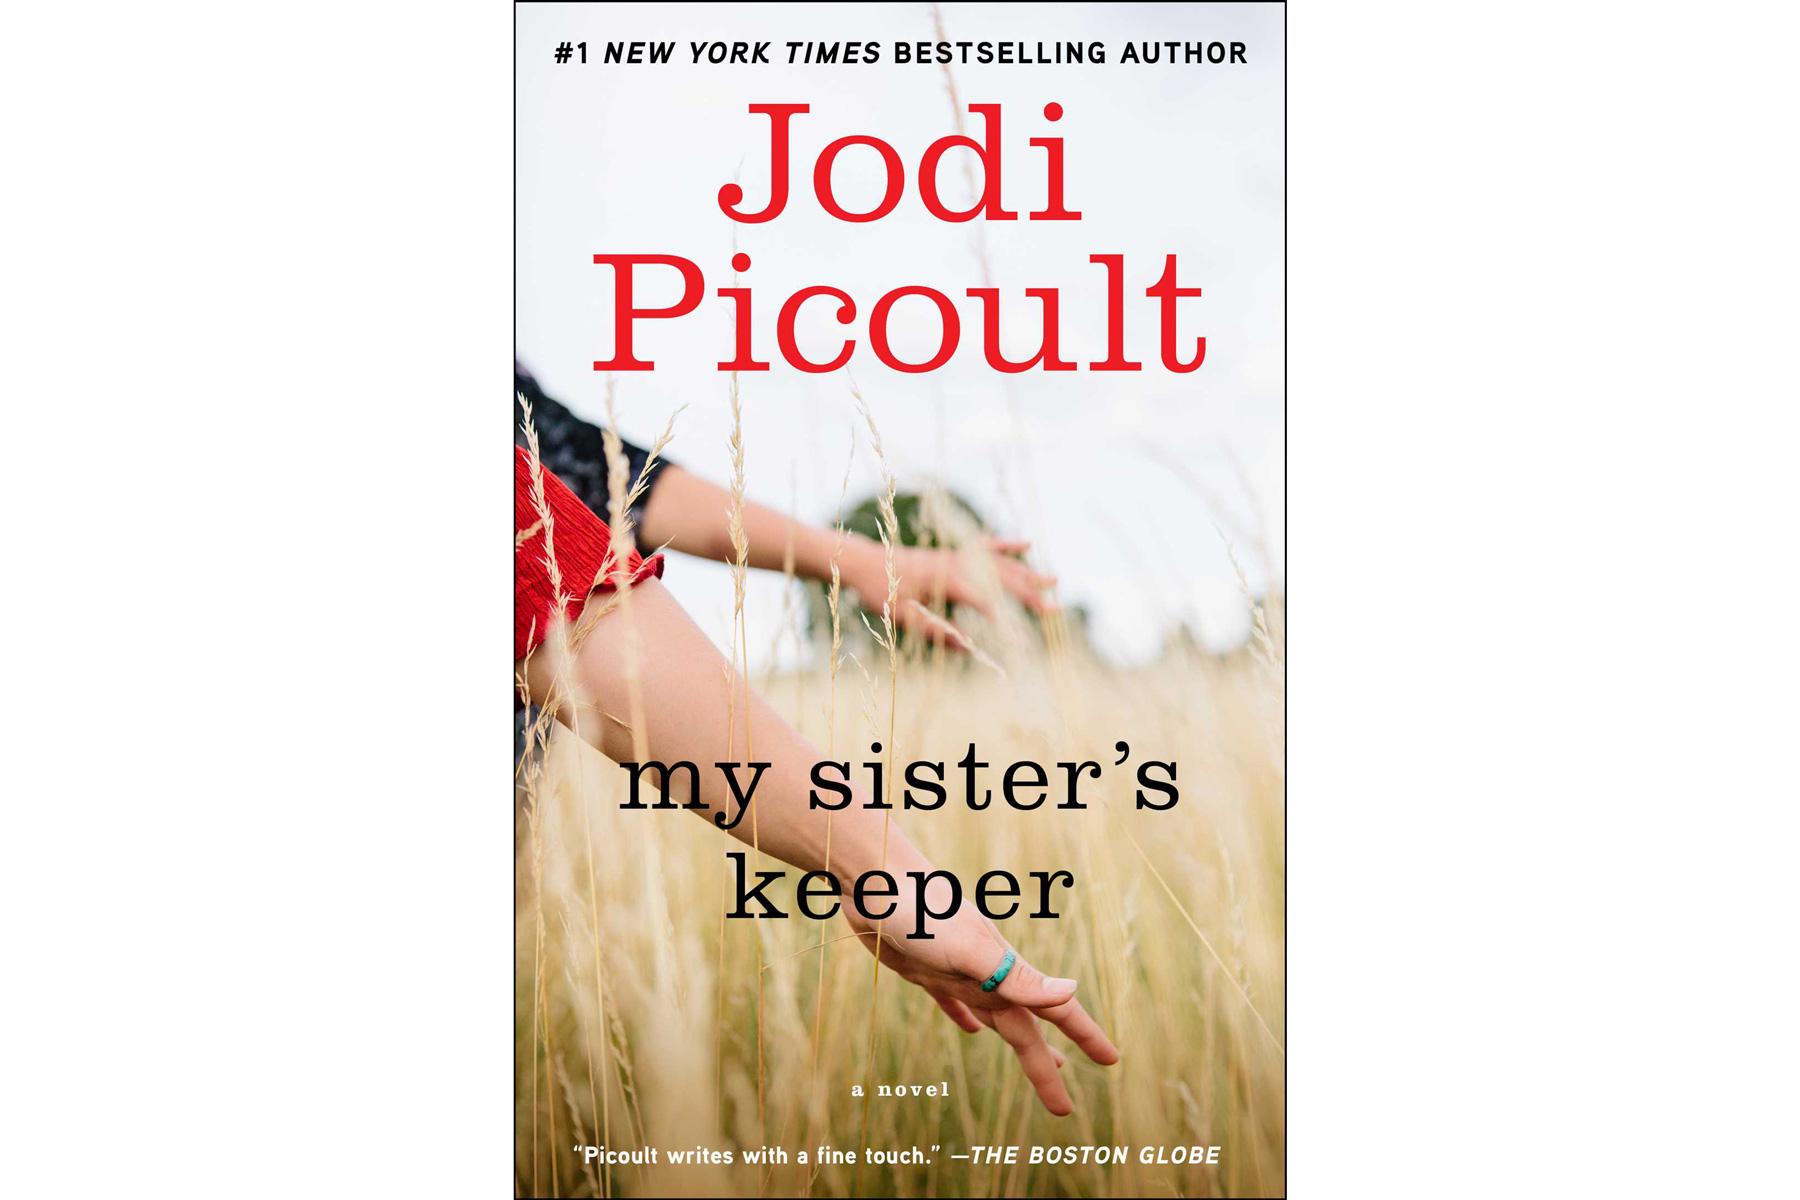 My Sister's Keeper, by Jodi Picoult (SAD BOOKS)